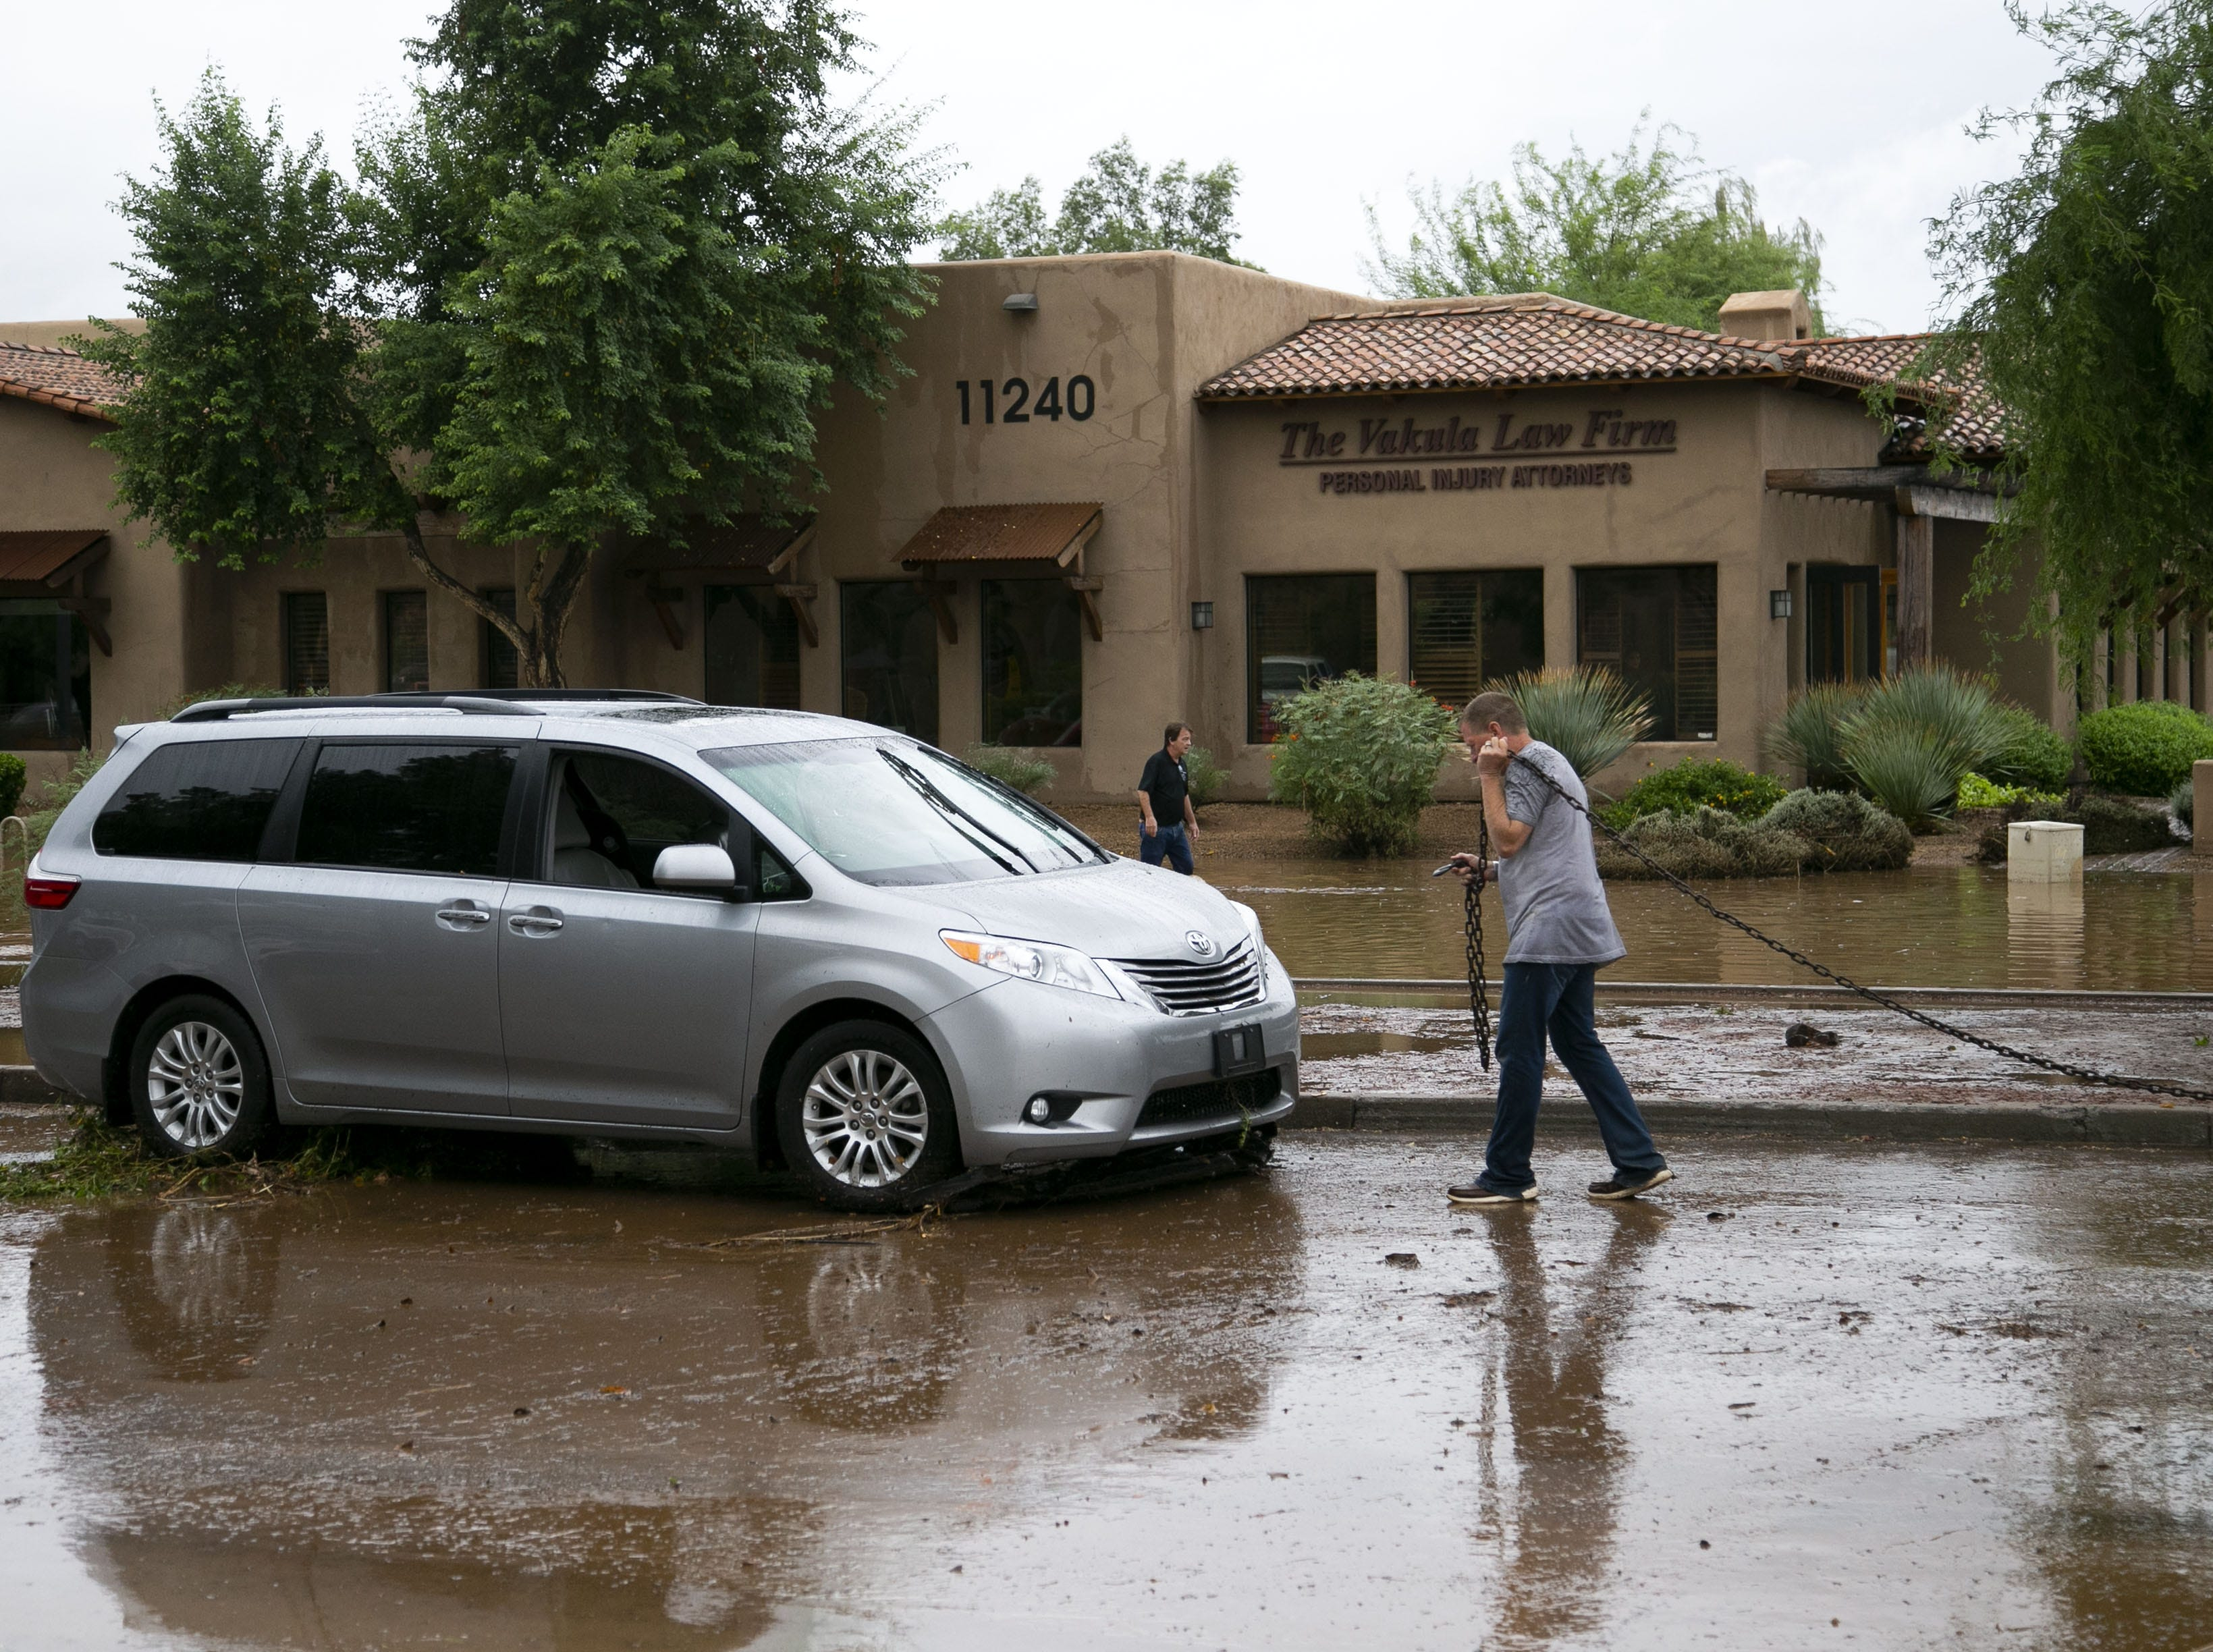 A Phoenix police officer works the scene where several vehicles got stuck in floodwaters along Tatum Boulevard north of Shea Boulevard in Phoenix on Oct. 2, 2018.